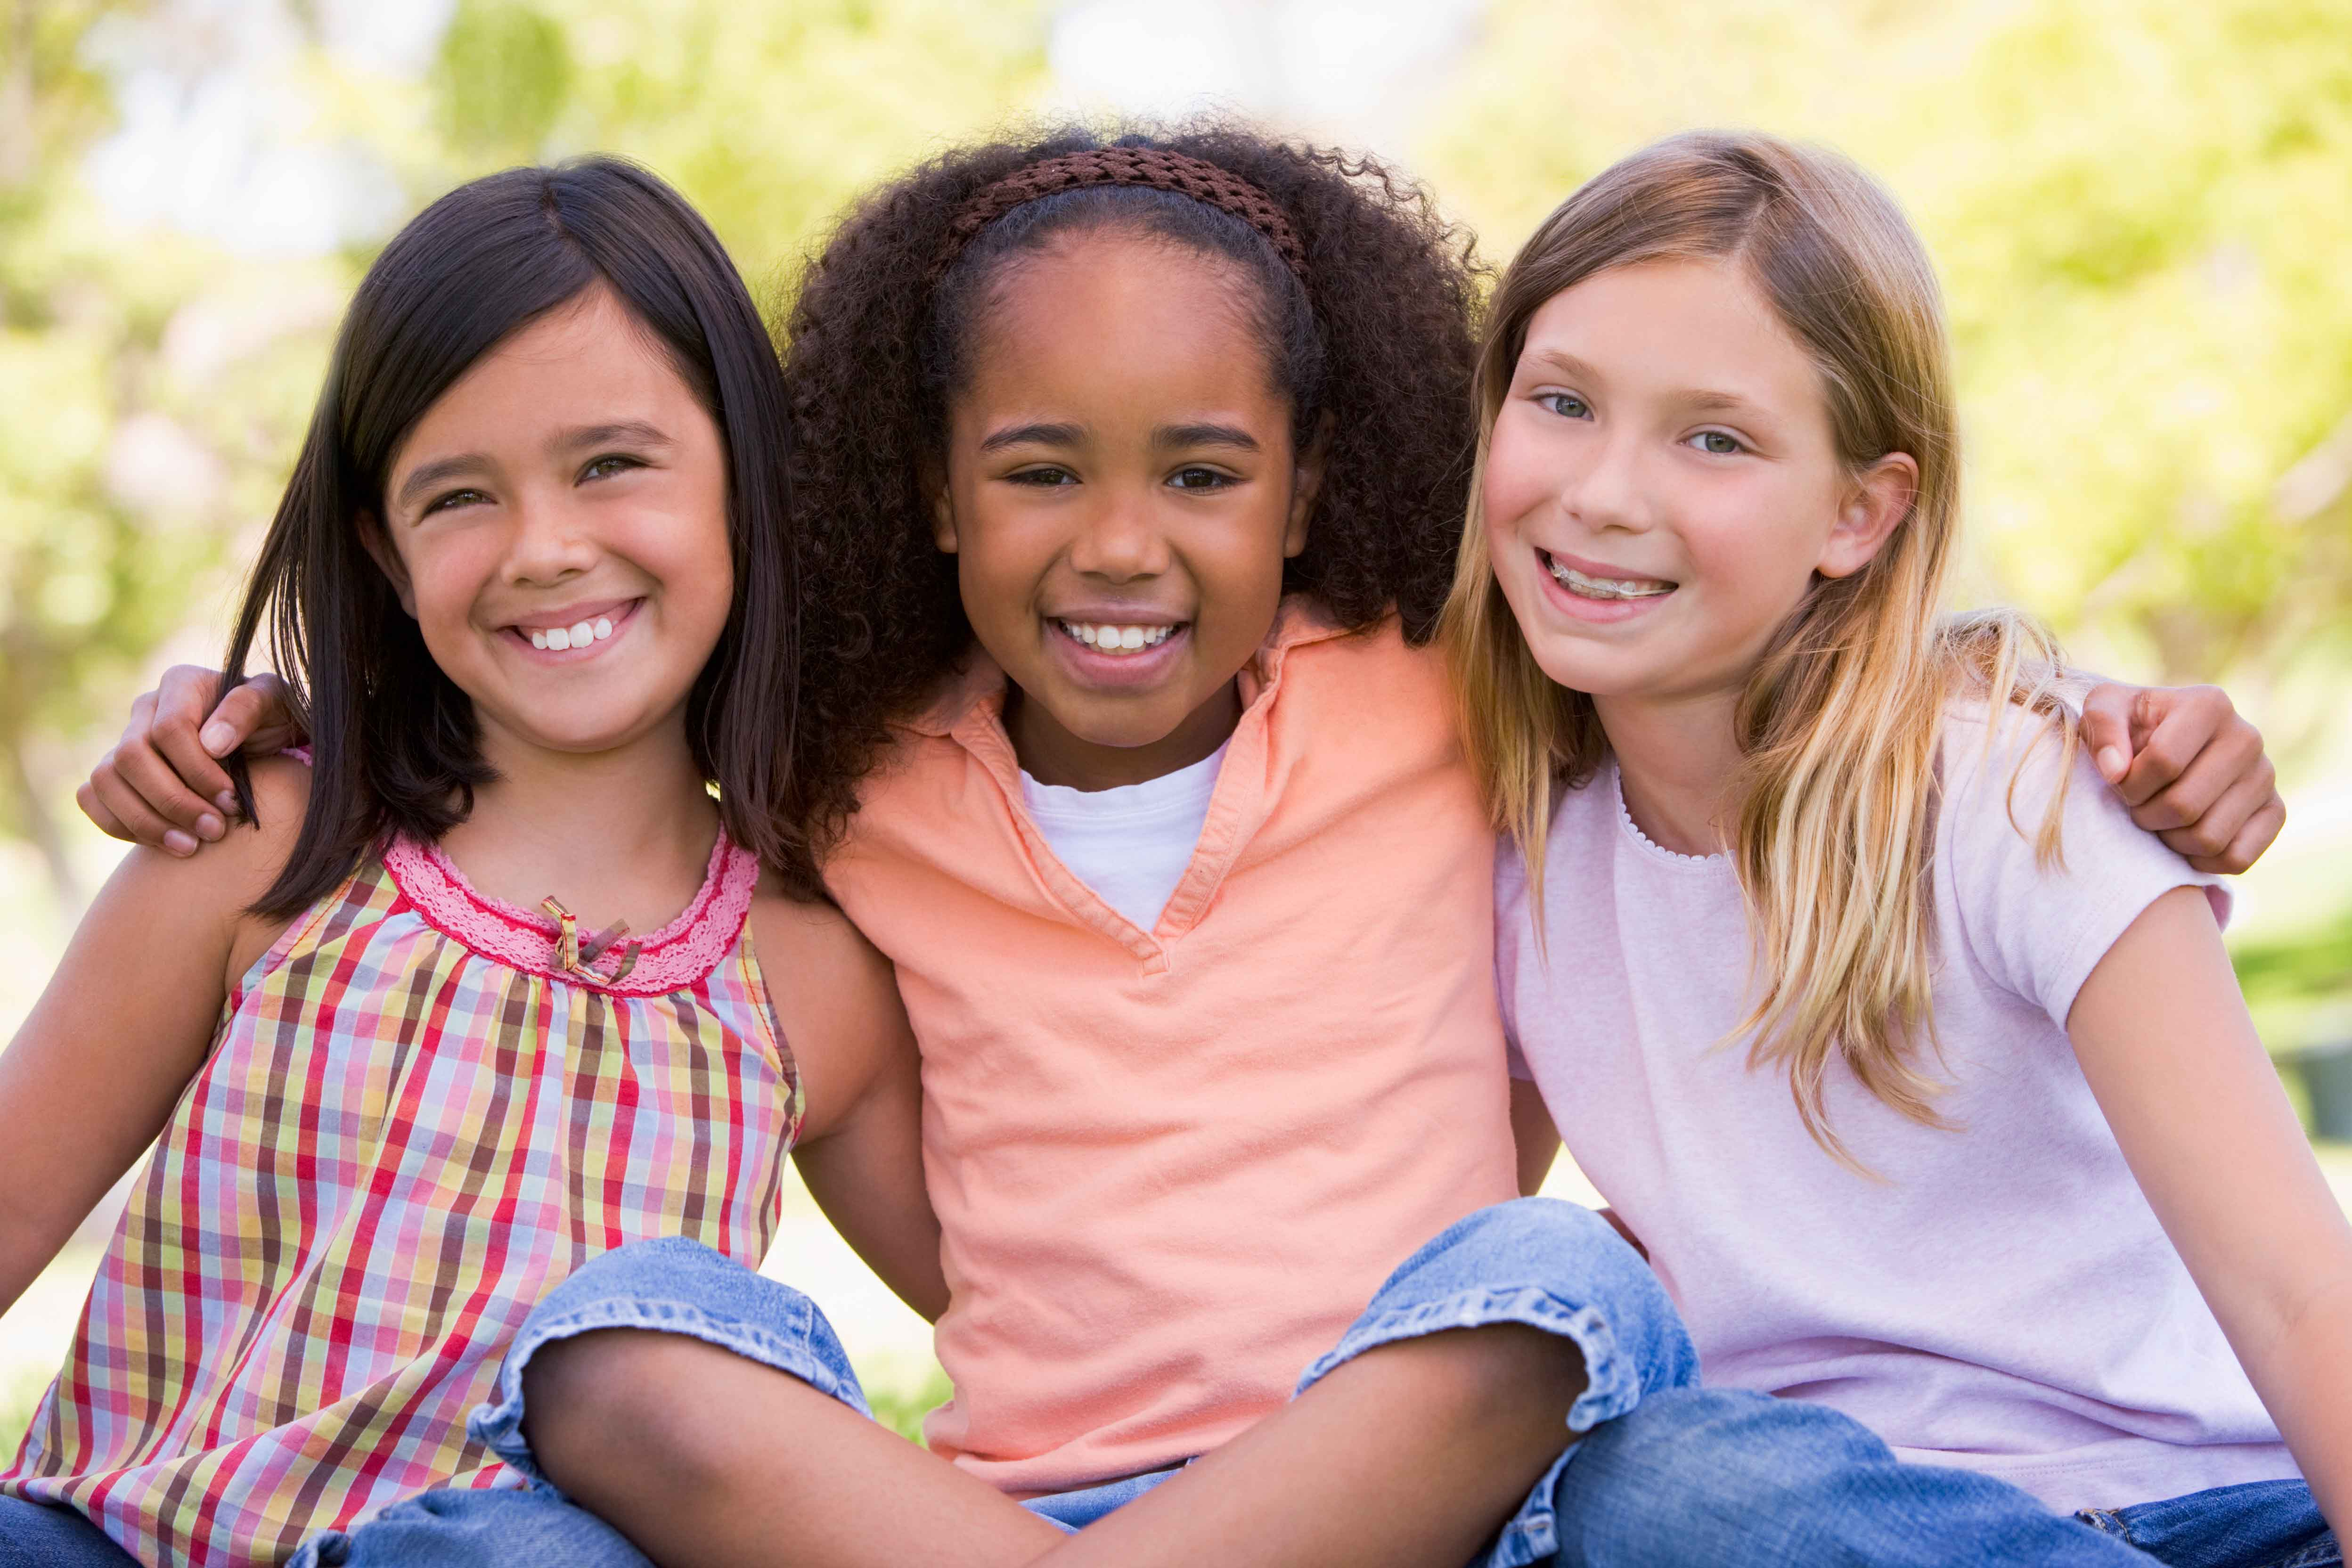 Dentistry for Children at 3020 Dental in Albany Park - Chicago IL